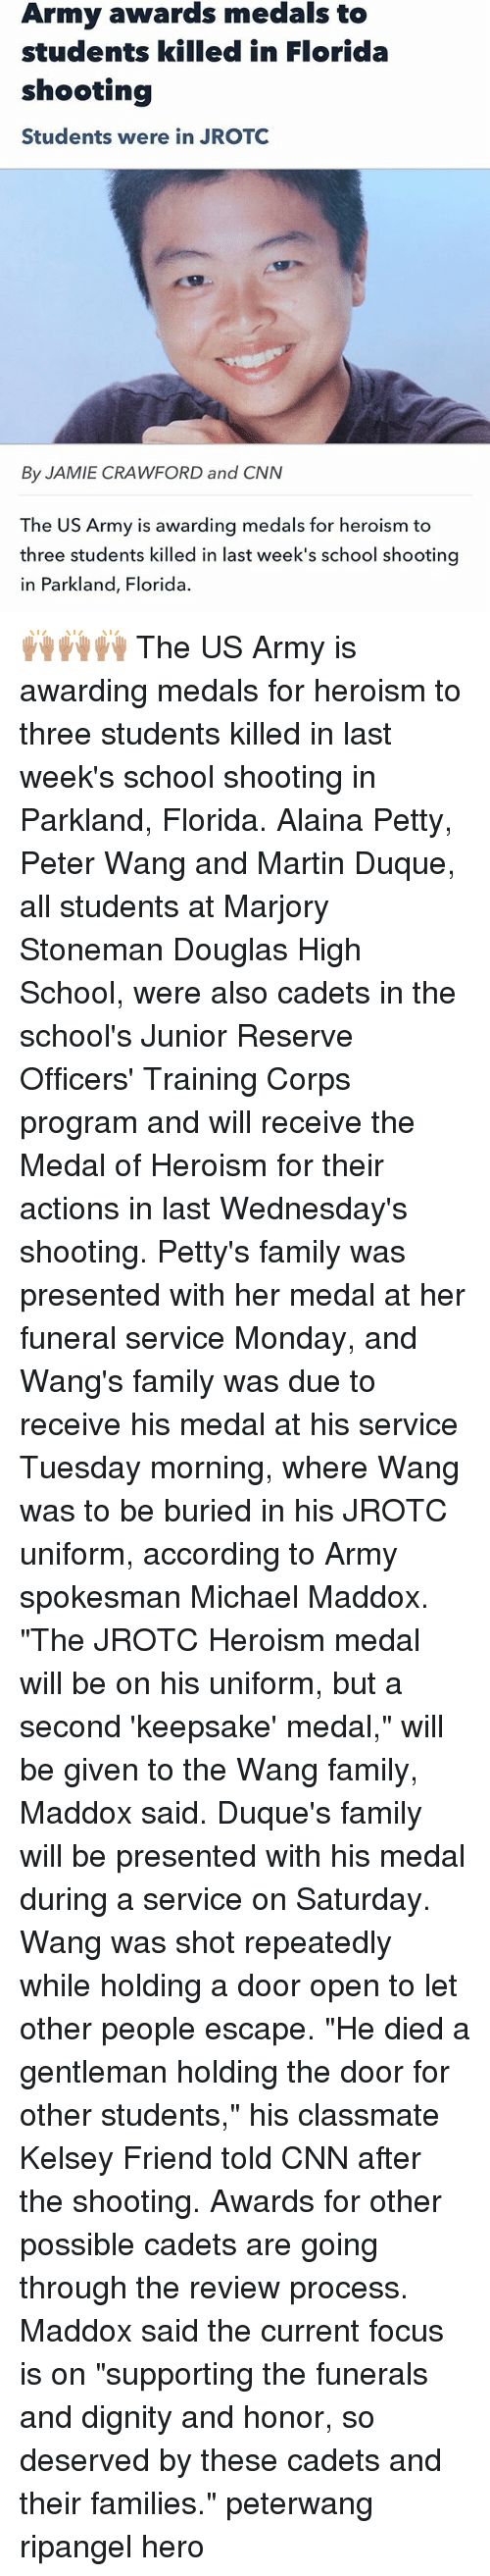 """cnn.com, Family, and Martin: Army awards medals to  students killed in Florida  shooting  Students were in JROTO  By JAMIE CRAWFORD and CNN  The US Army is awarding medals for heroism to  three students killed in last week's school shooting  in Parkland, Florida. 🙌🏽🙌🏽🙌🏽 The US Army is awarding medals for heroism to three students killed in last week's school shooting in Parkland, Florida. Alaina Petty, Peter Wang and Martin Duque, all students at Marjory Stoneman Douglas High School, were also cadets in the school's Junior Reserve Officers' Training Corps program and will receive the Medal of Heroism for their actions in last Wednesday's shooting. Petty's family was presented with her medal at her funeral service Monday, and Wang's family was due to receive his medal at his service Tuesday morning, where Wang was to be buried in his JROTC uniform, according to Army spokesman Michael Maddox. """"The JROTC Heroism medal will be on his uniform, but a second 'keepsake' medal,"""" will be given to the Wang family, Maddox said. Duque's family will be presented with his medal during a service on Saturday. Wang was shot repeatedly while holding a door open to let other people escape. """"He died a gentleman holding the door for other students,"""" his classmate Kelsey Friend told CNN after the shooting. Awards for other possible cadets are going through the review process. Maddox said the current focus is on """"supporting the funerals and dignity and honor, so deserved by these cadets and their families."""" peterwang ripangel hero"""